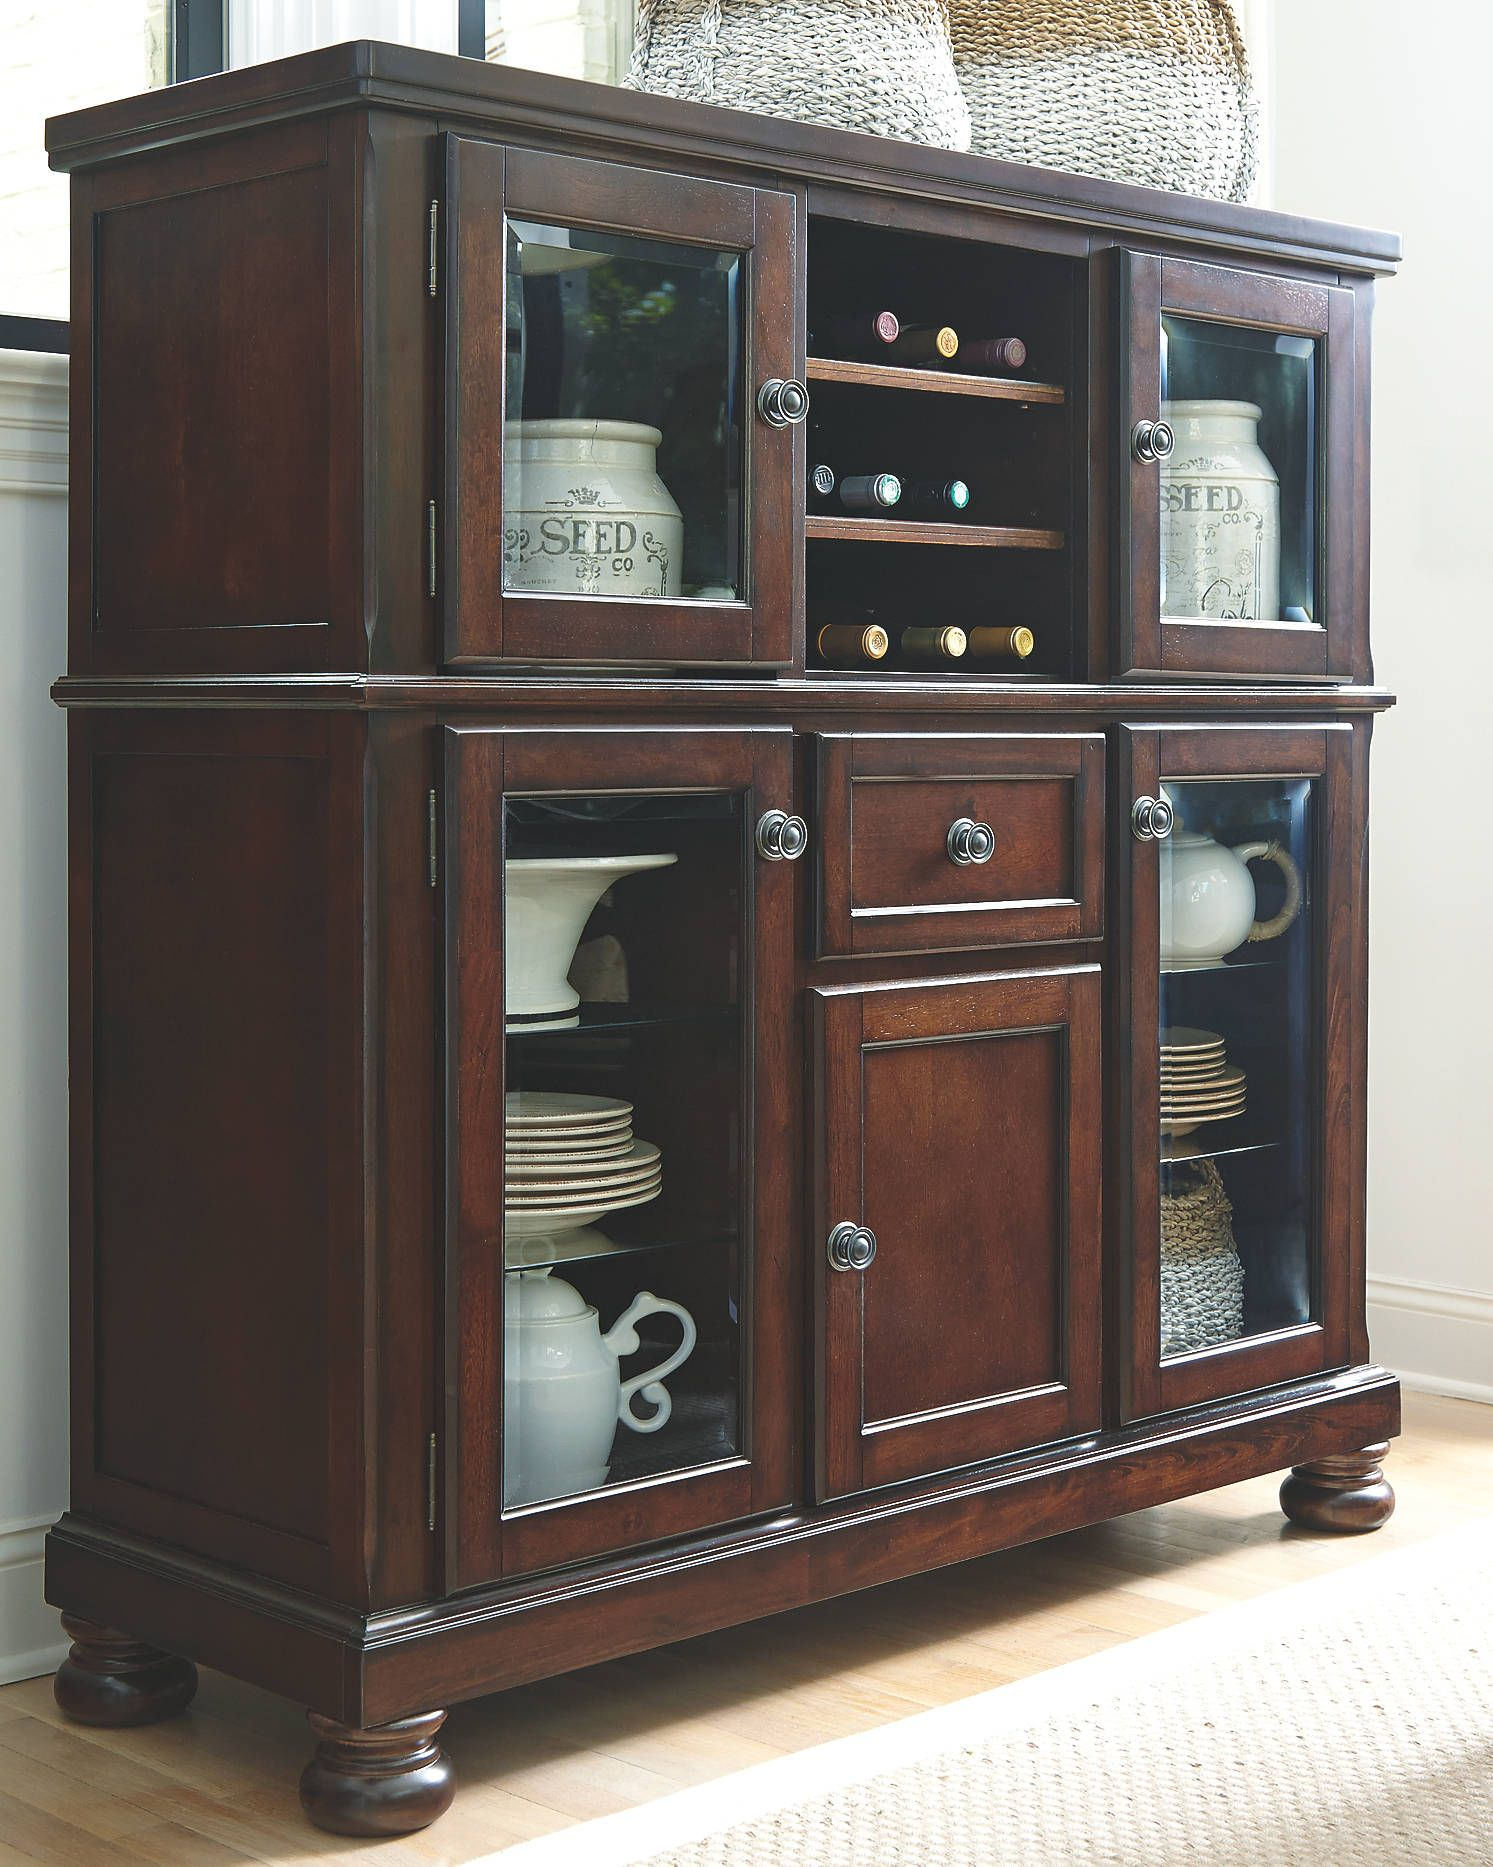 With Its Glass Panel Doors Antique Style Hardware And Classic Bun Feet The Porter Dining Room